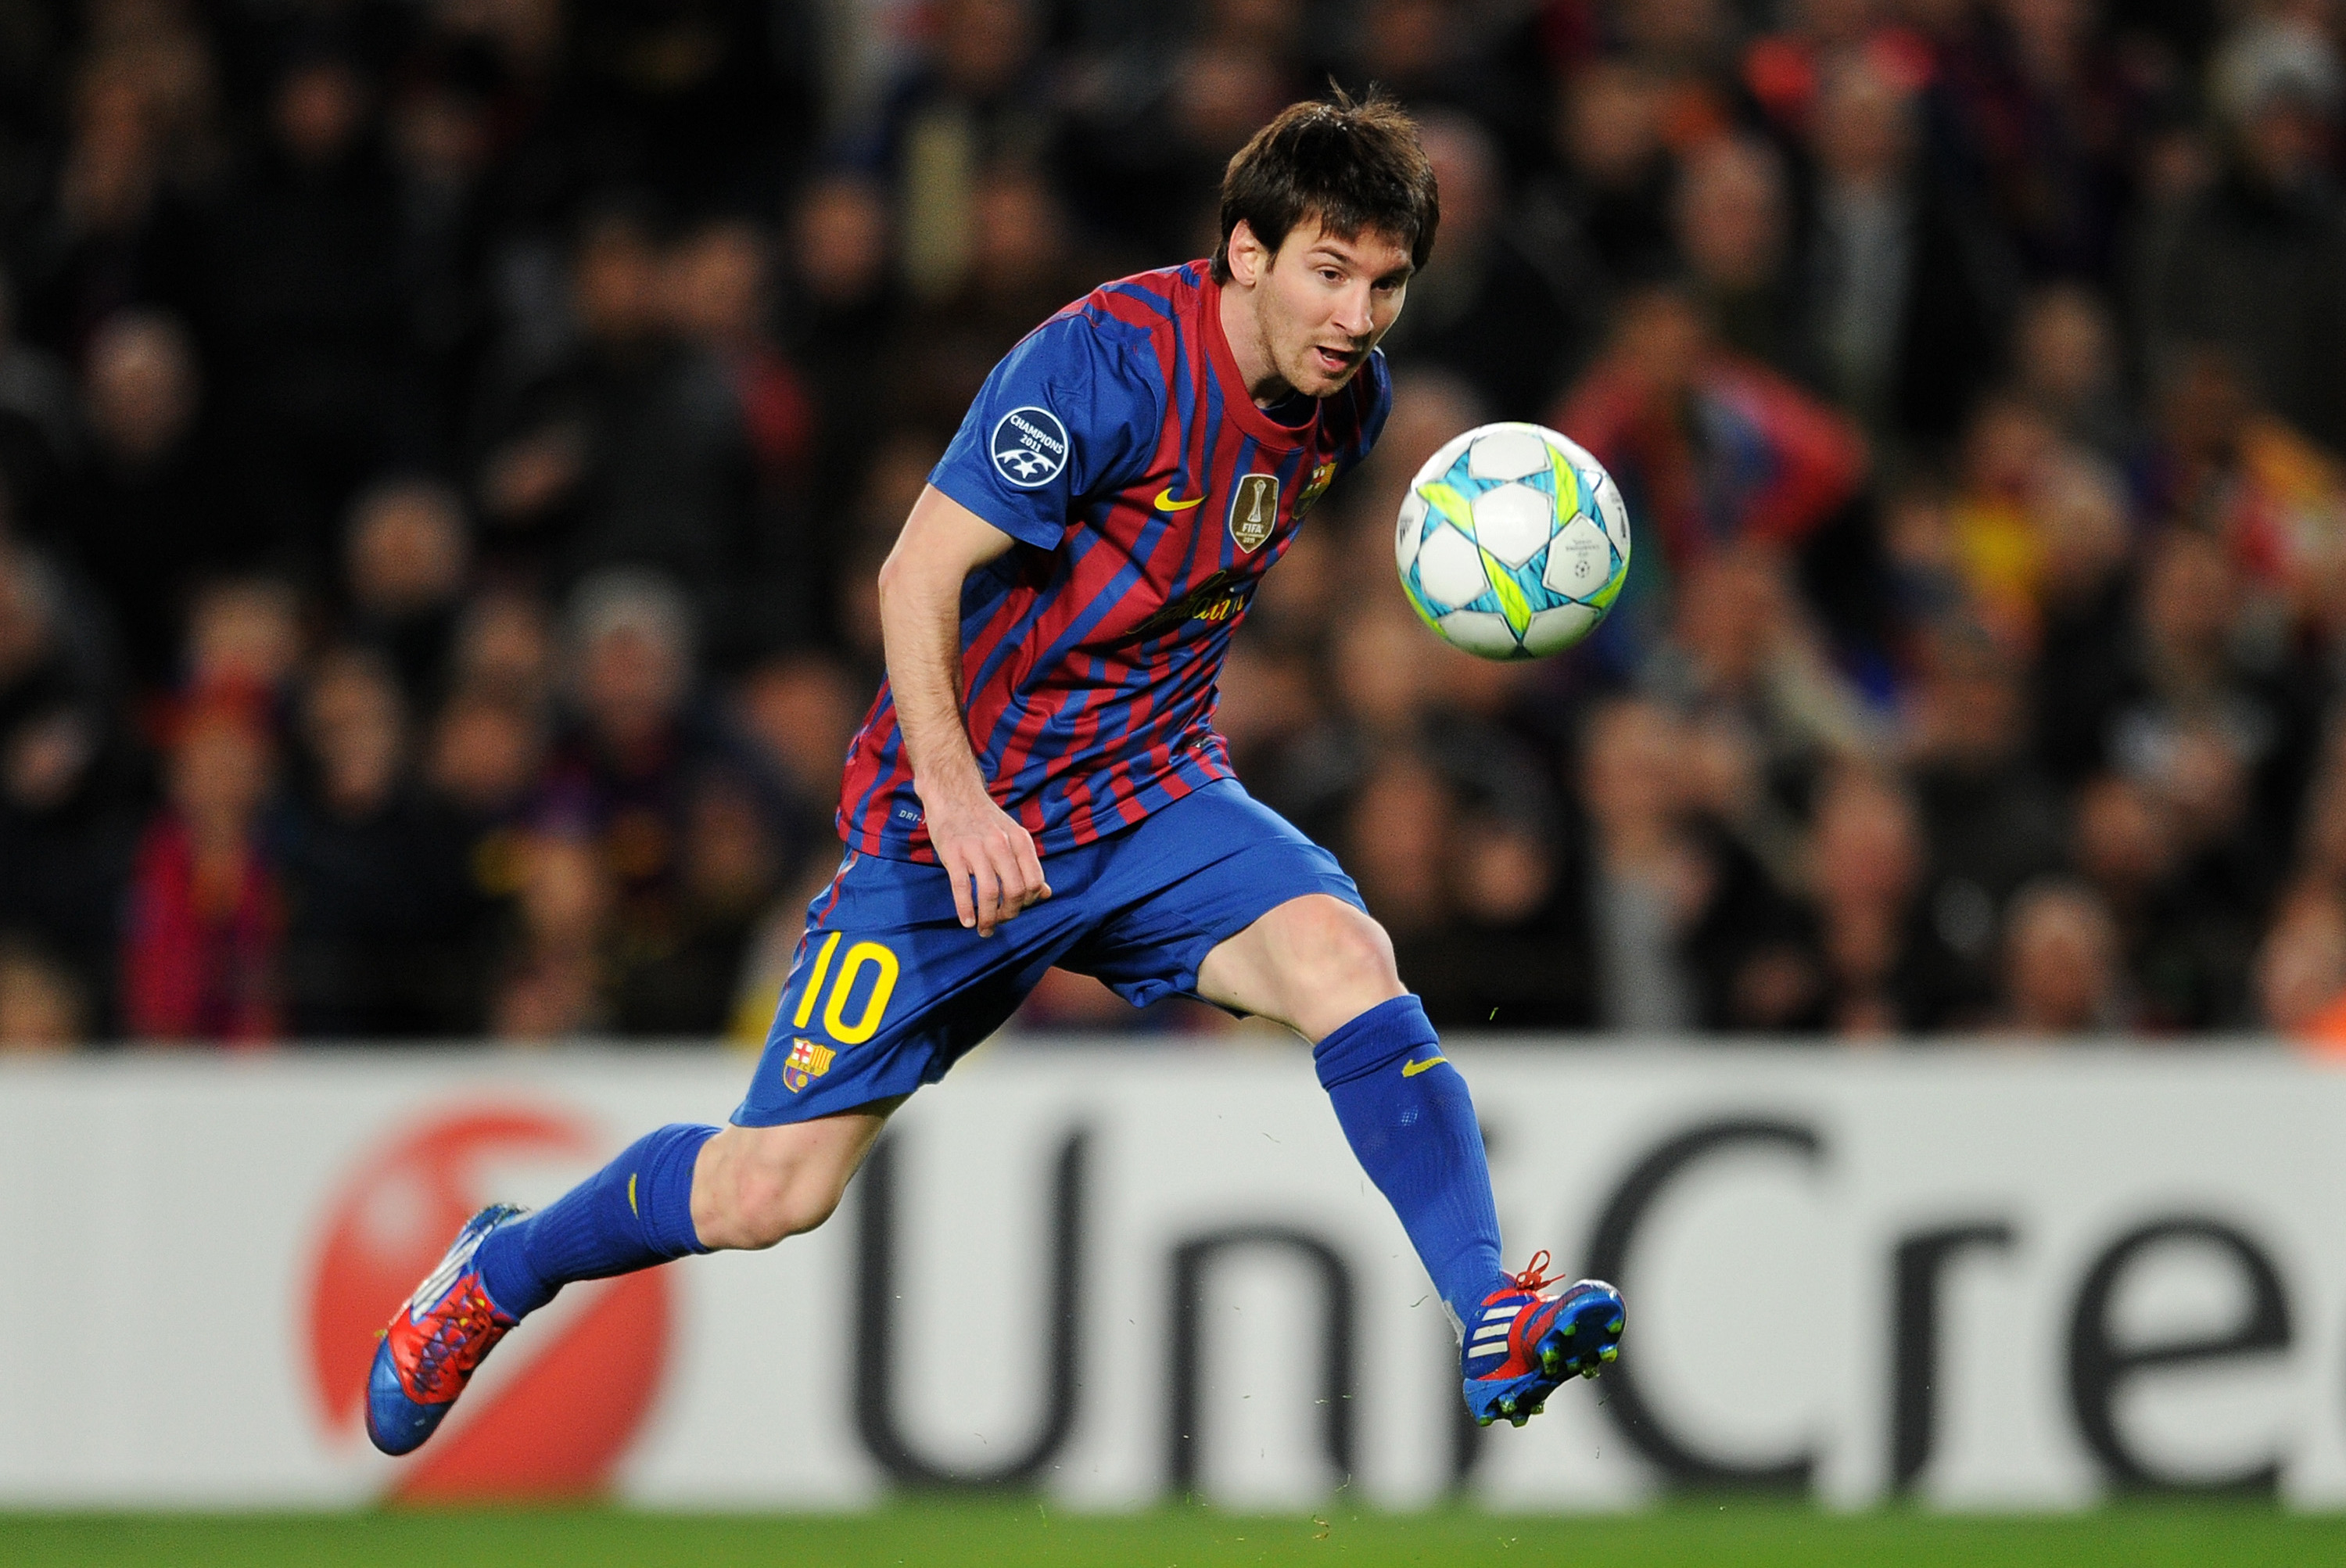 Barcelona Vs Bayer Leverkusen Lionel Messi Cements Status As Best In The World Bleacher Report Latest News Videos And Highlights